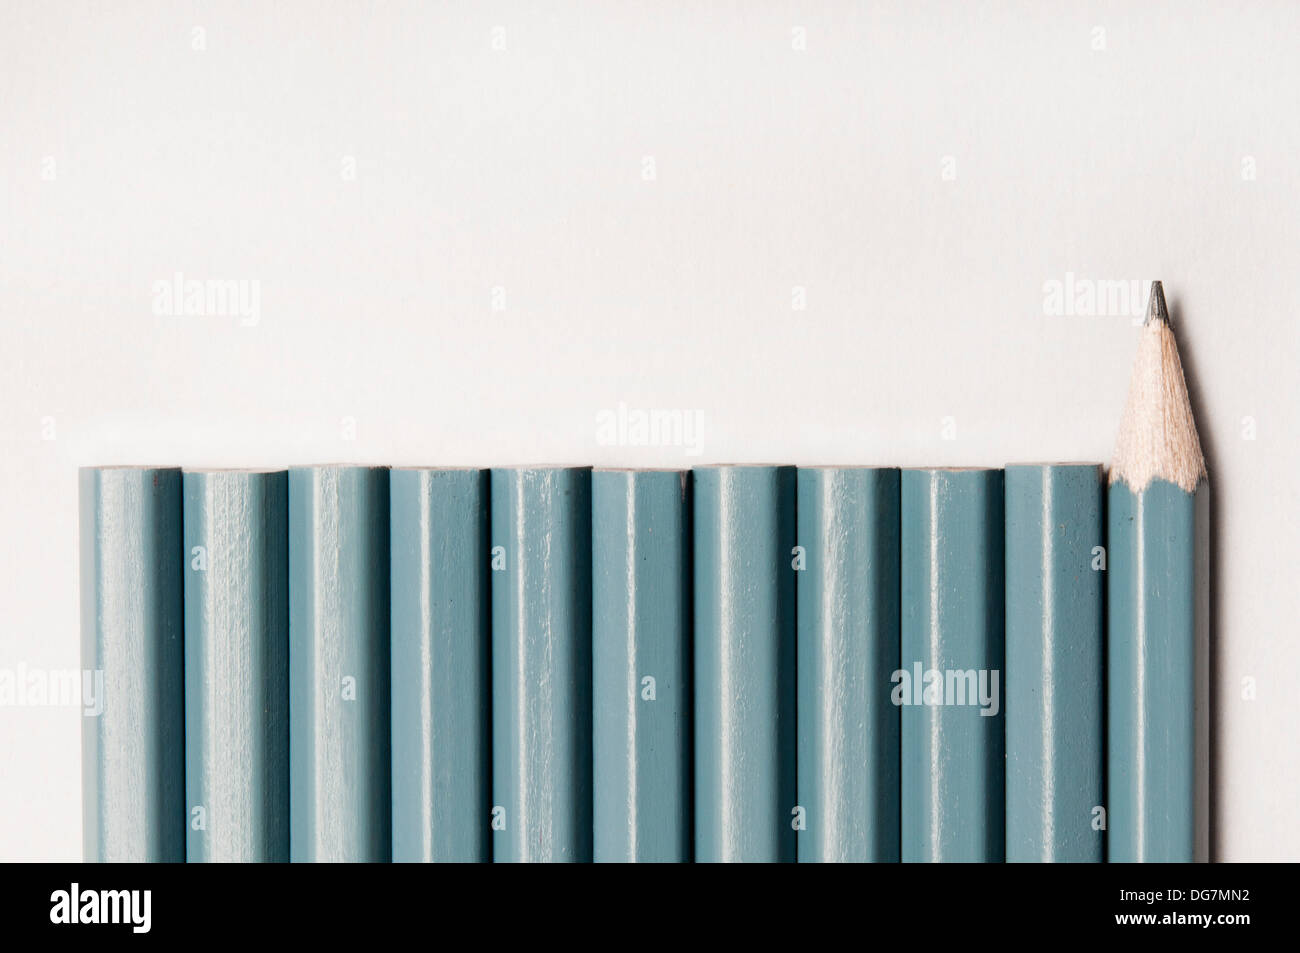 pencils in a row, one turned in the opposite direction, concept for contrarian - Stock Image